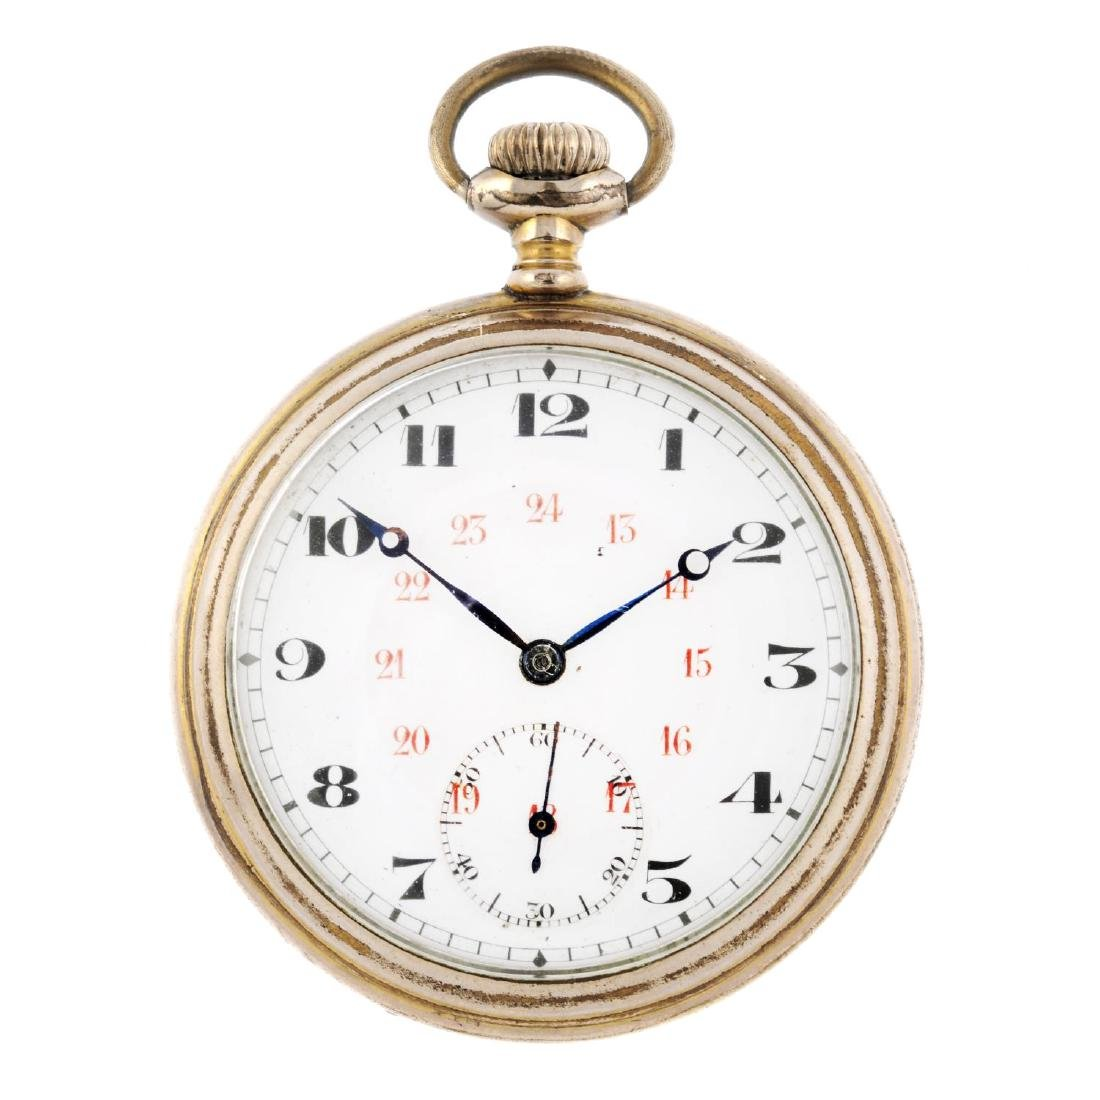 An open face pocket watch. Gold plated case. Unsigned